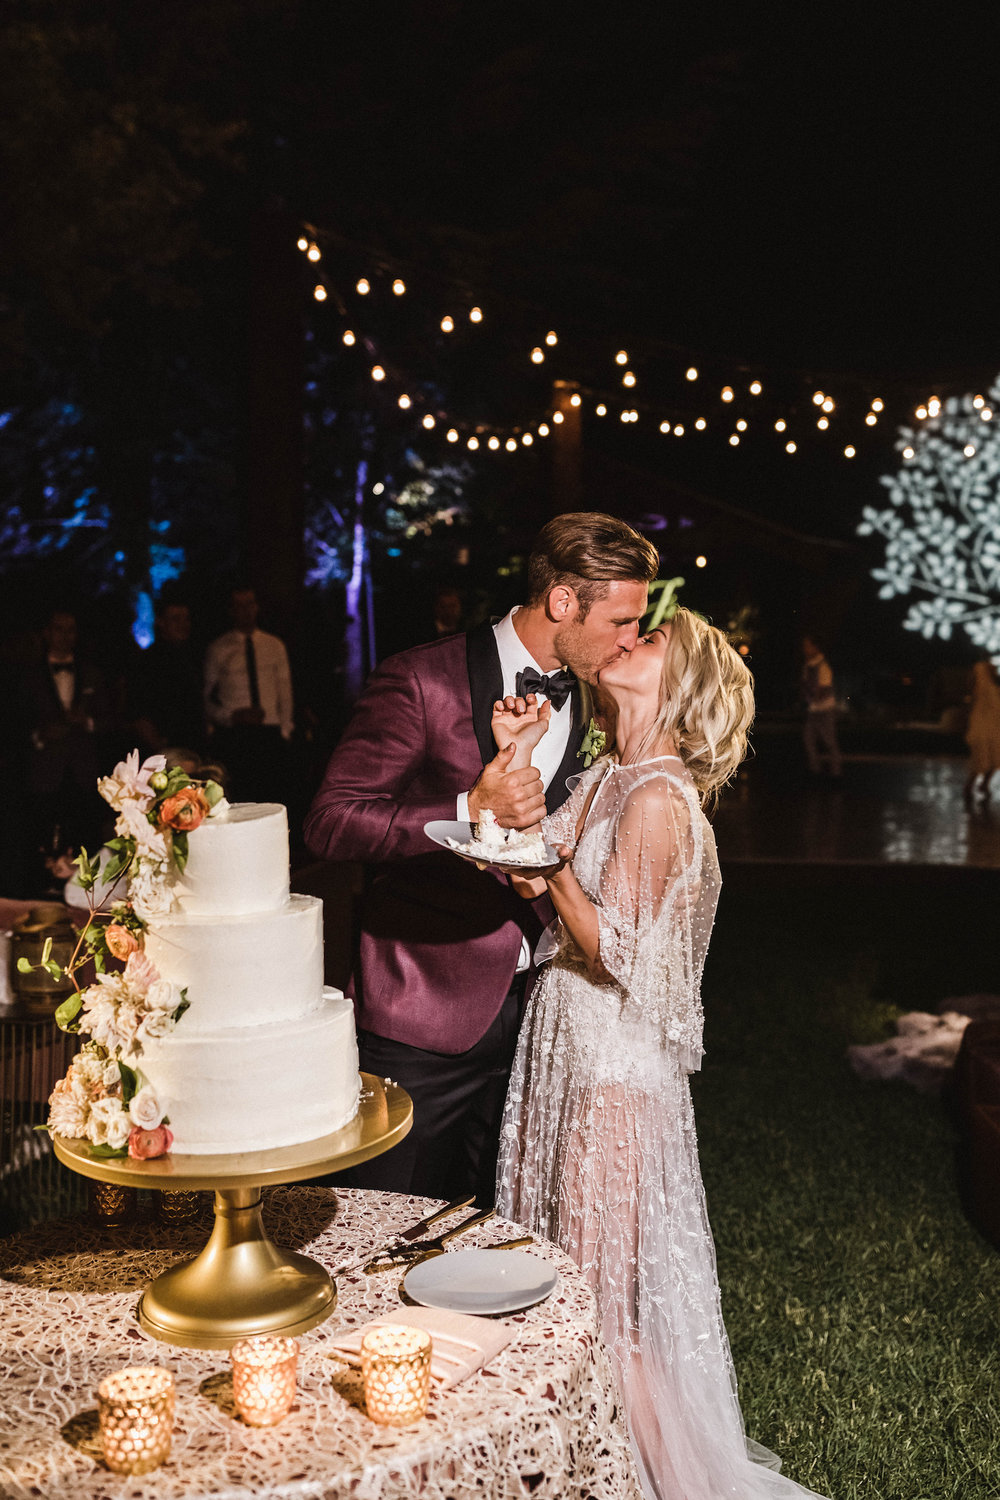 Julianne Hough and Brooks Laich Wedding - Wild Bloom Floral - Sarah Falugo Photography - Simply Troy Event Design 5.jpeg